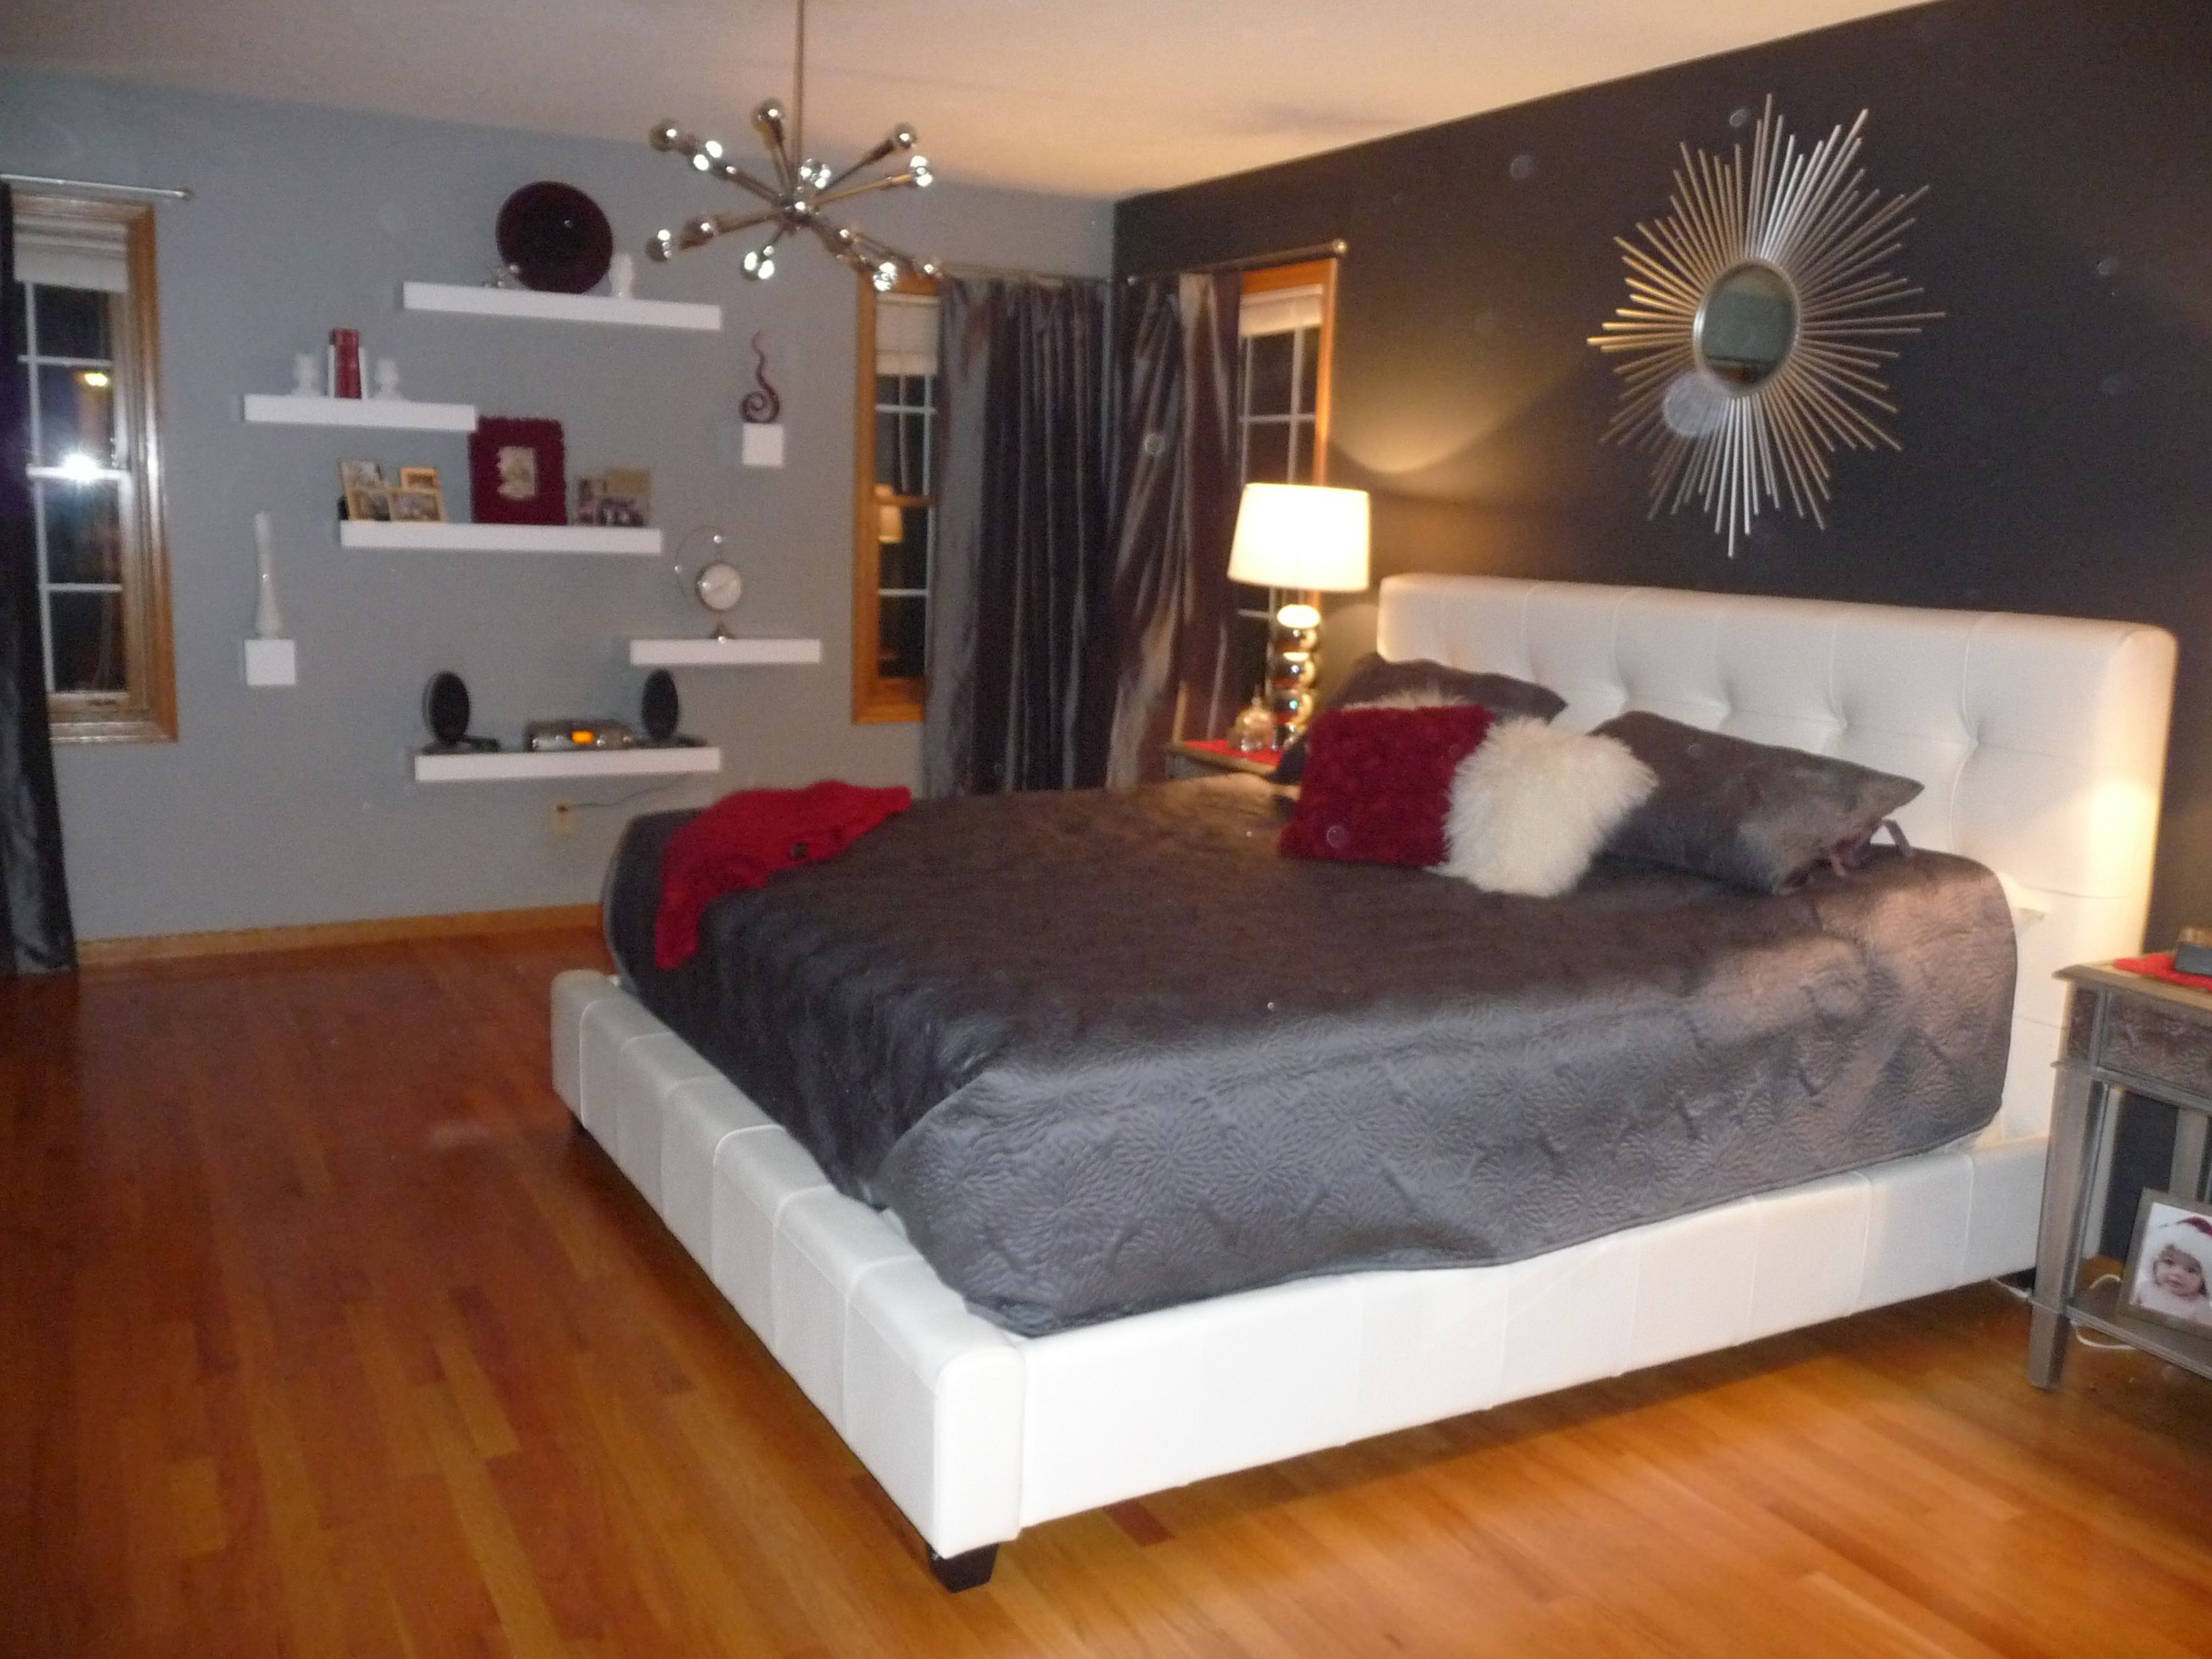 another view of our master bedroom decorating ideas